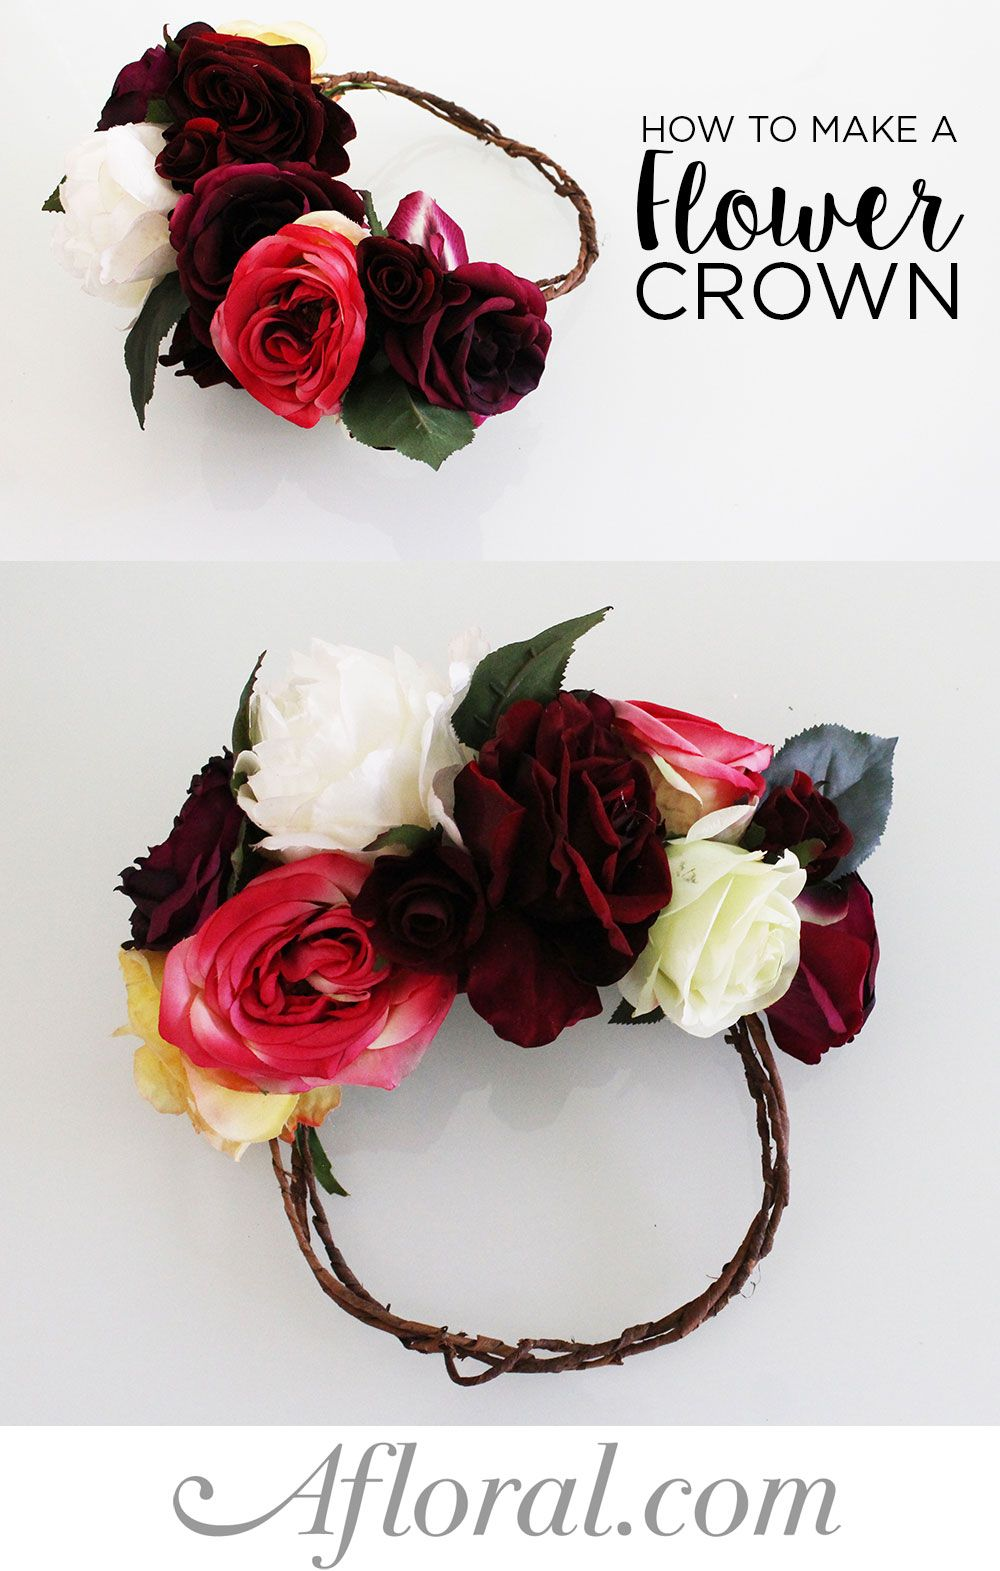 How to make a flower crown diy flower silk flowers and flower crowns gorgeous diy flower crown make a show stopping design for your wedding with silk flowers from afloral this simple do it yourself is fun and a great izmirmasajfo